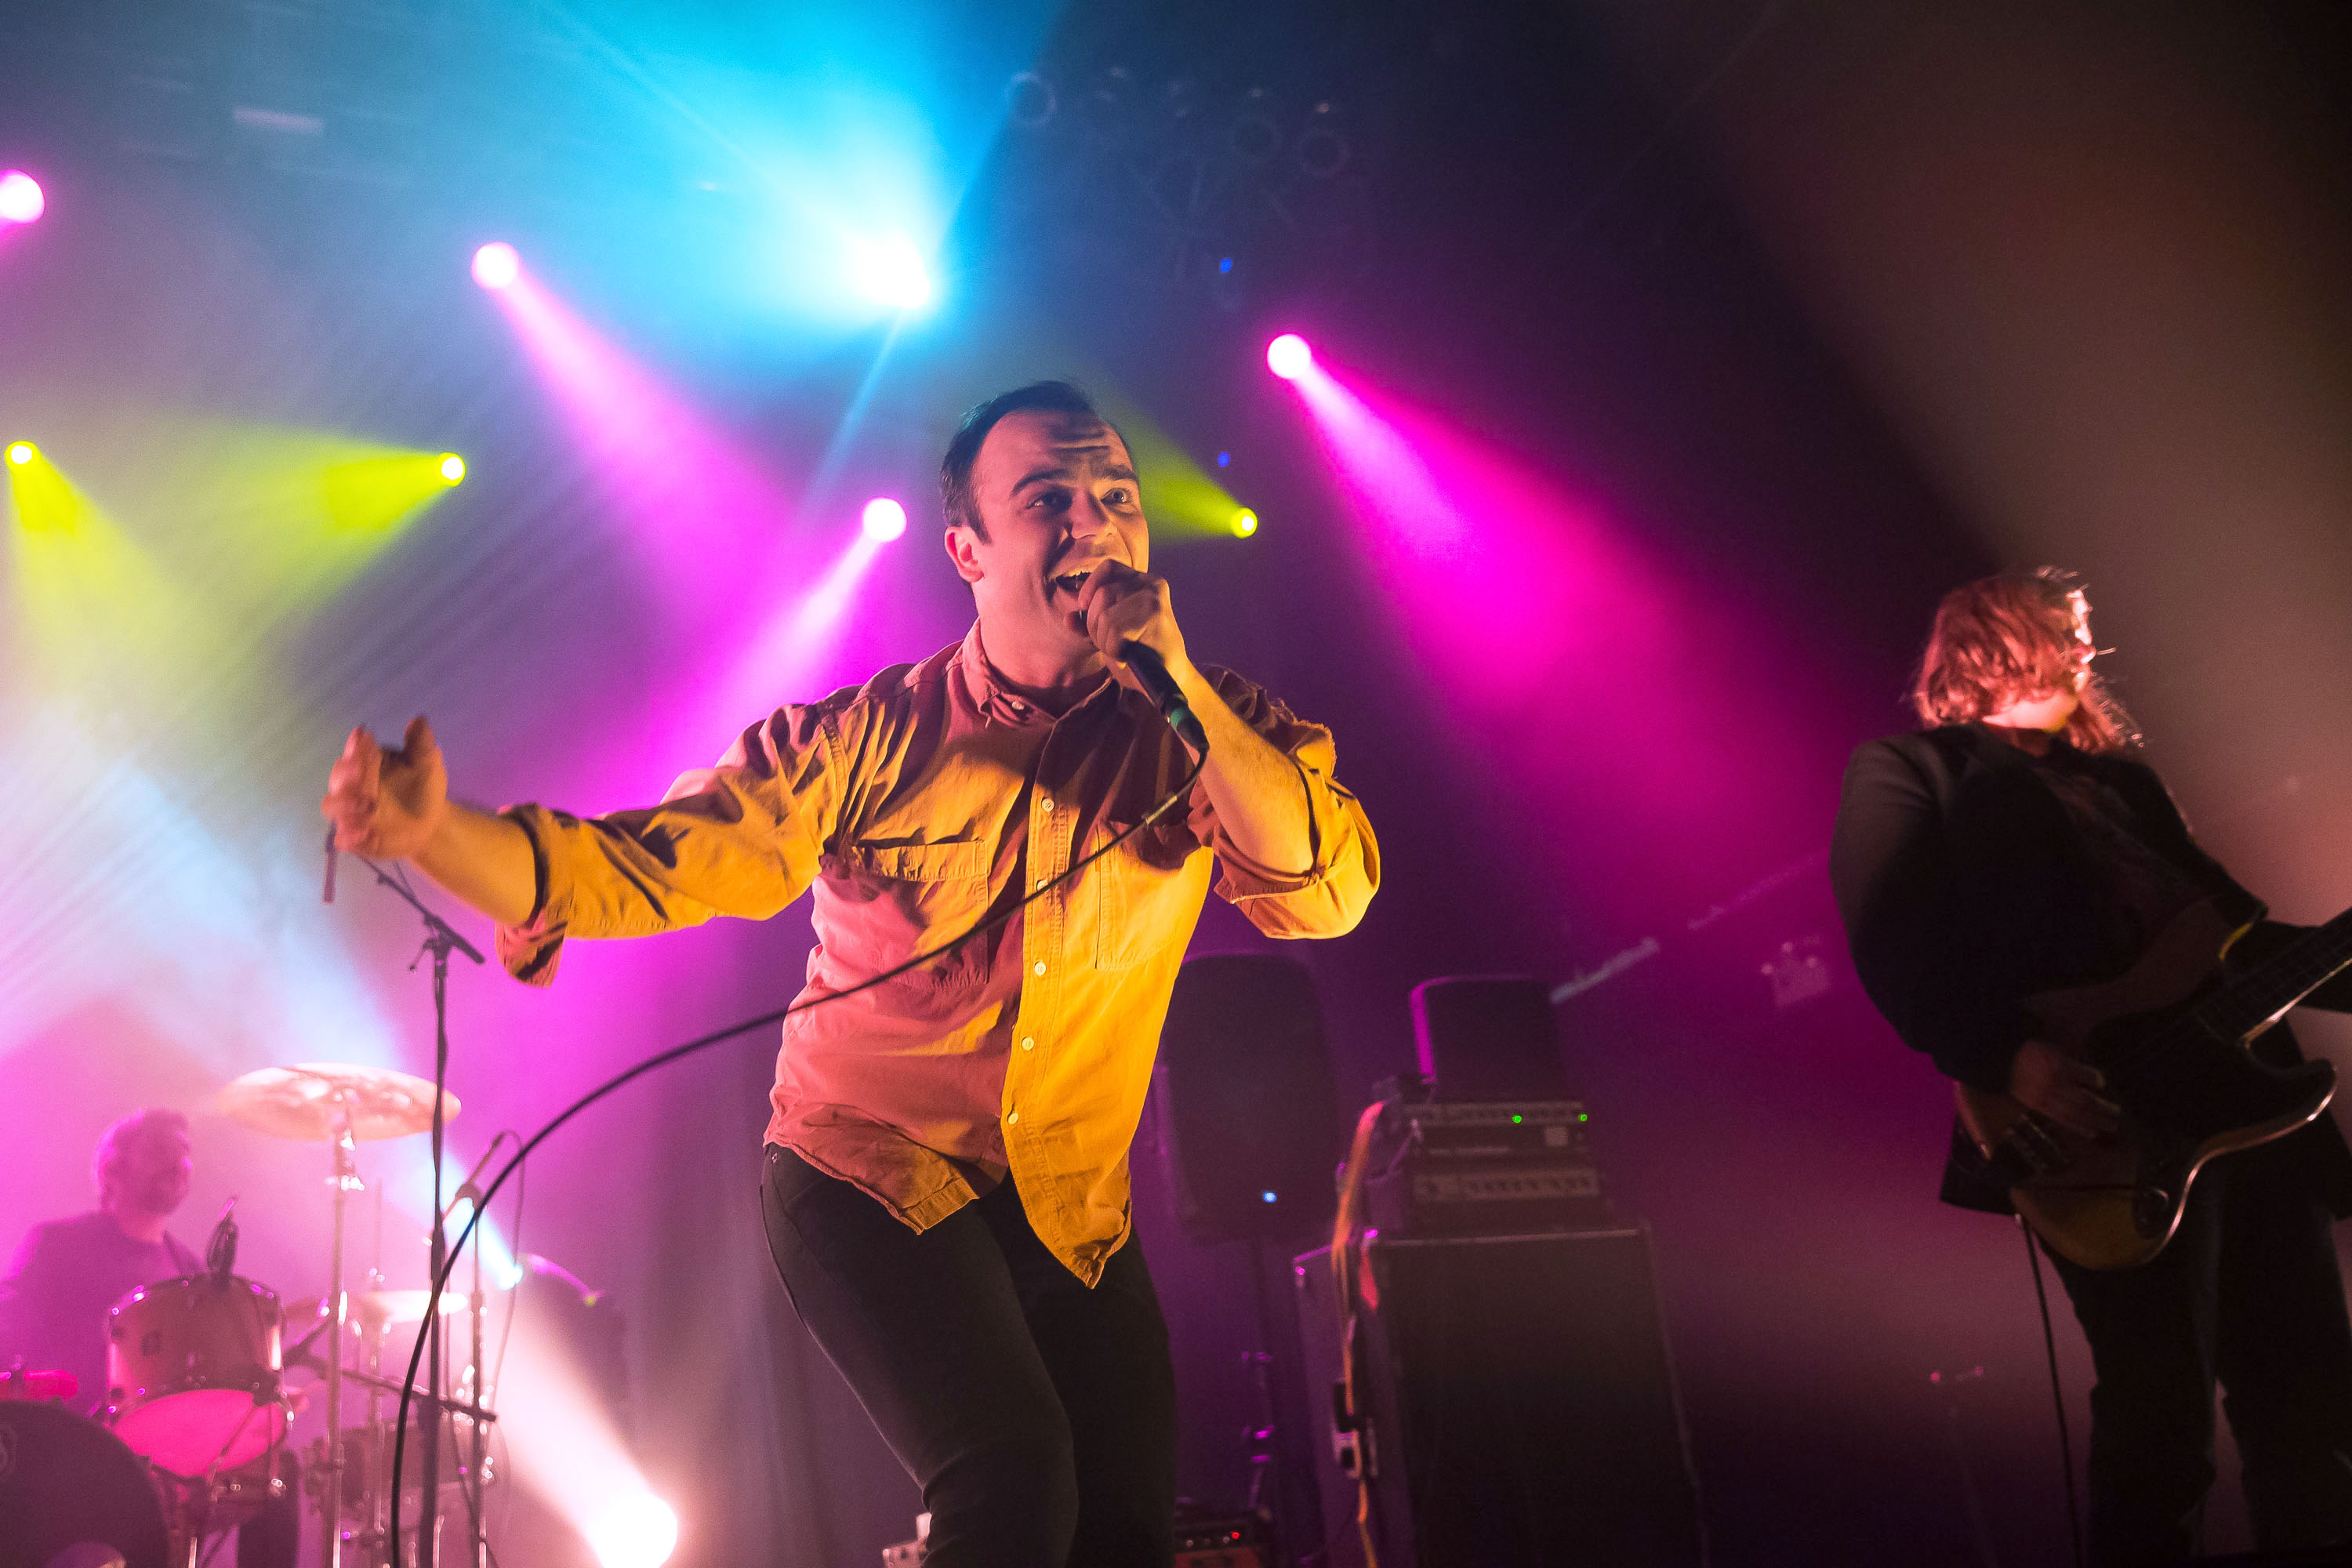 NEW YORK, NY - JANUARY 09:  Singer Samuel T. Herring of Future Islands performs at Terminal 5 on January 9, 2015 in New York